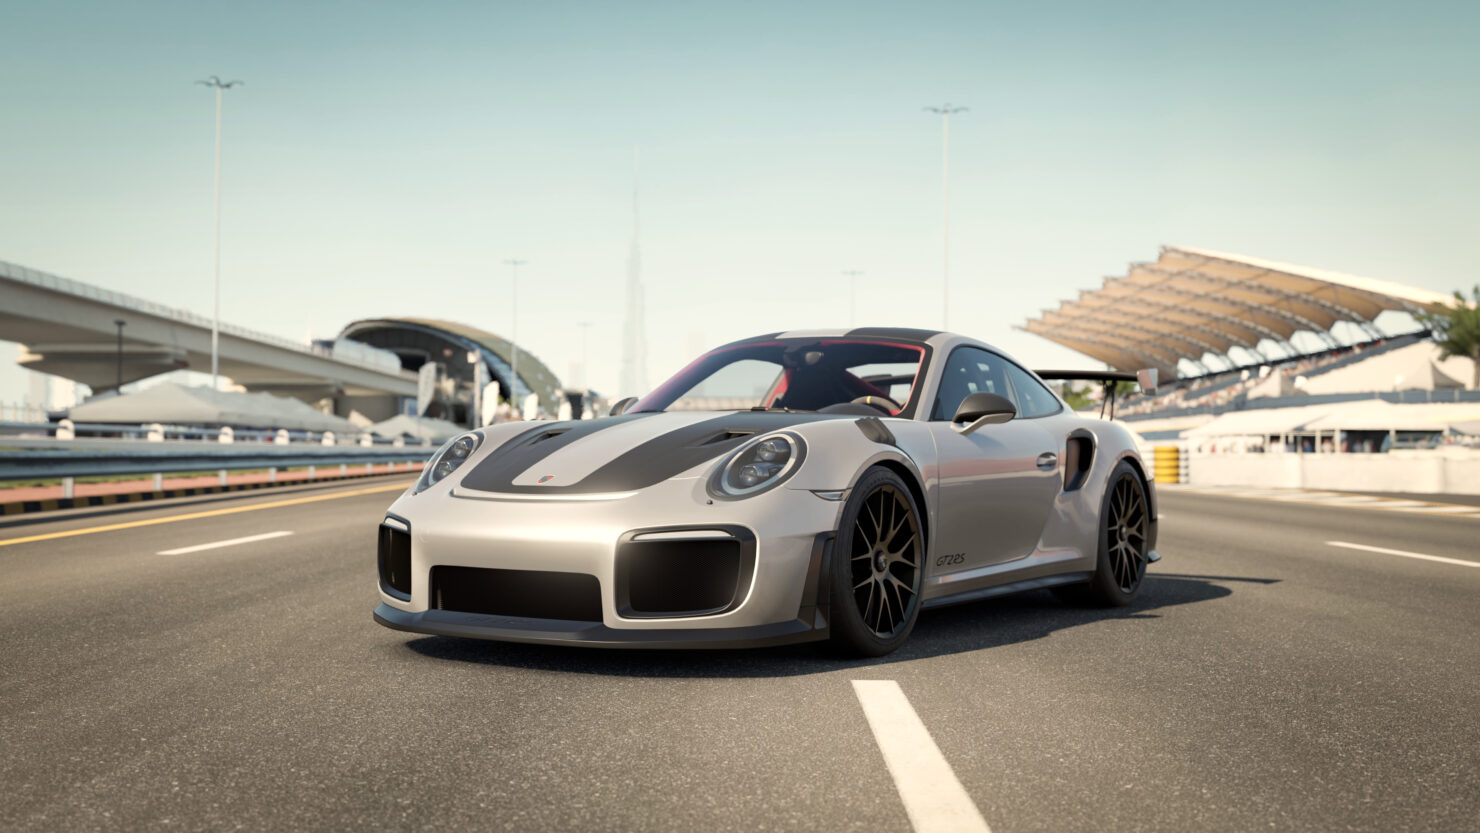 forza-motorsport-7-porsche-gt2-rs-4k-front-angle